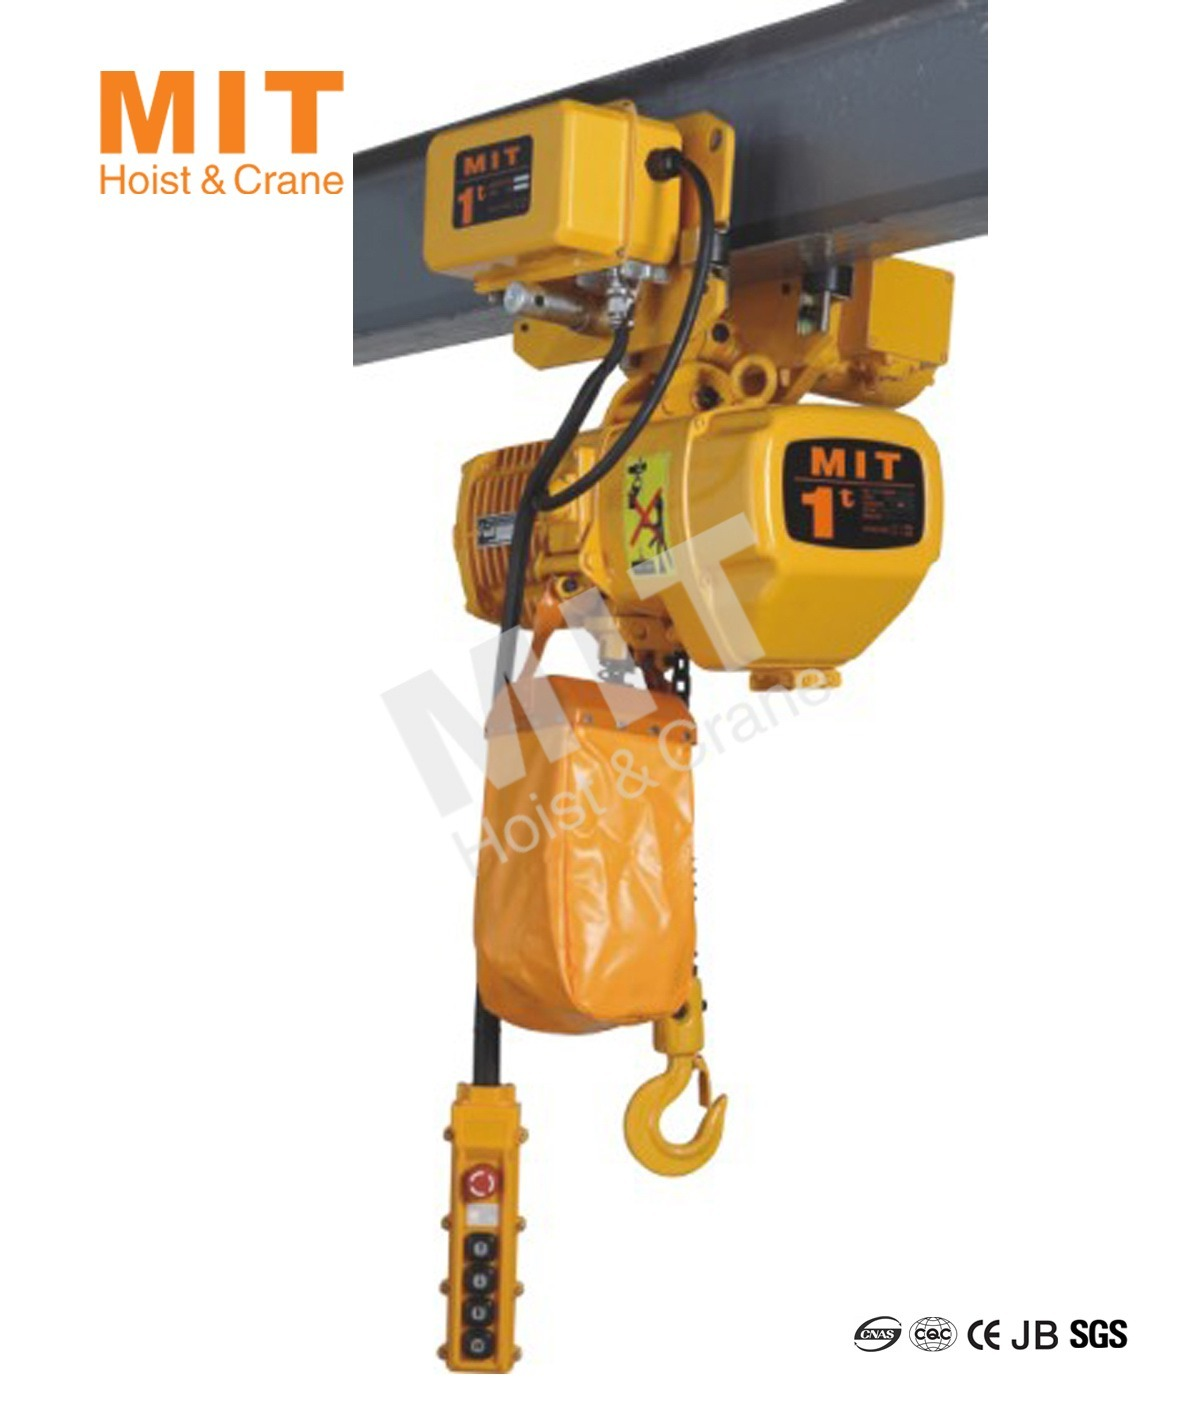 Mit Electric Chain Hoist 1t With Electric Trolley Hhbd01